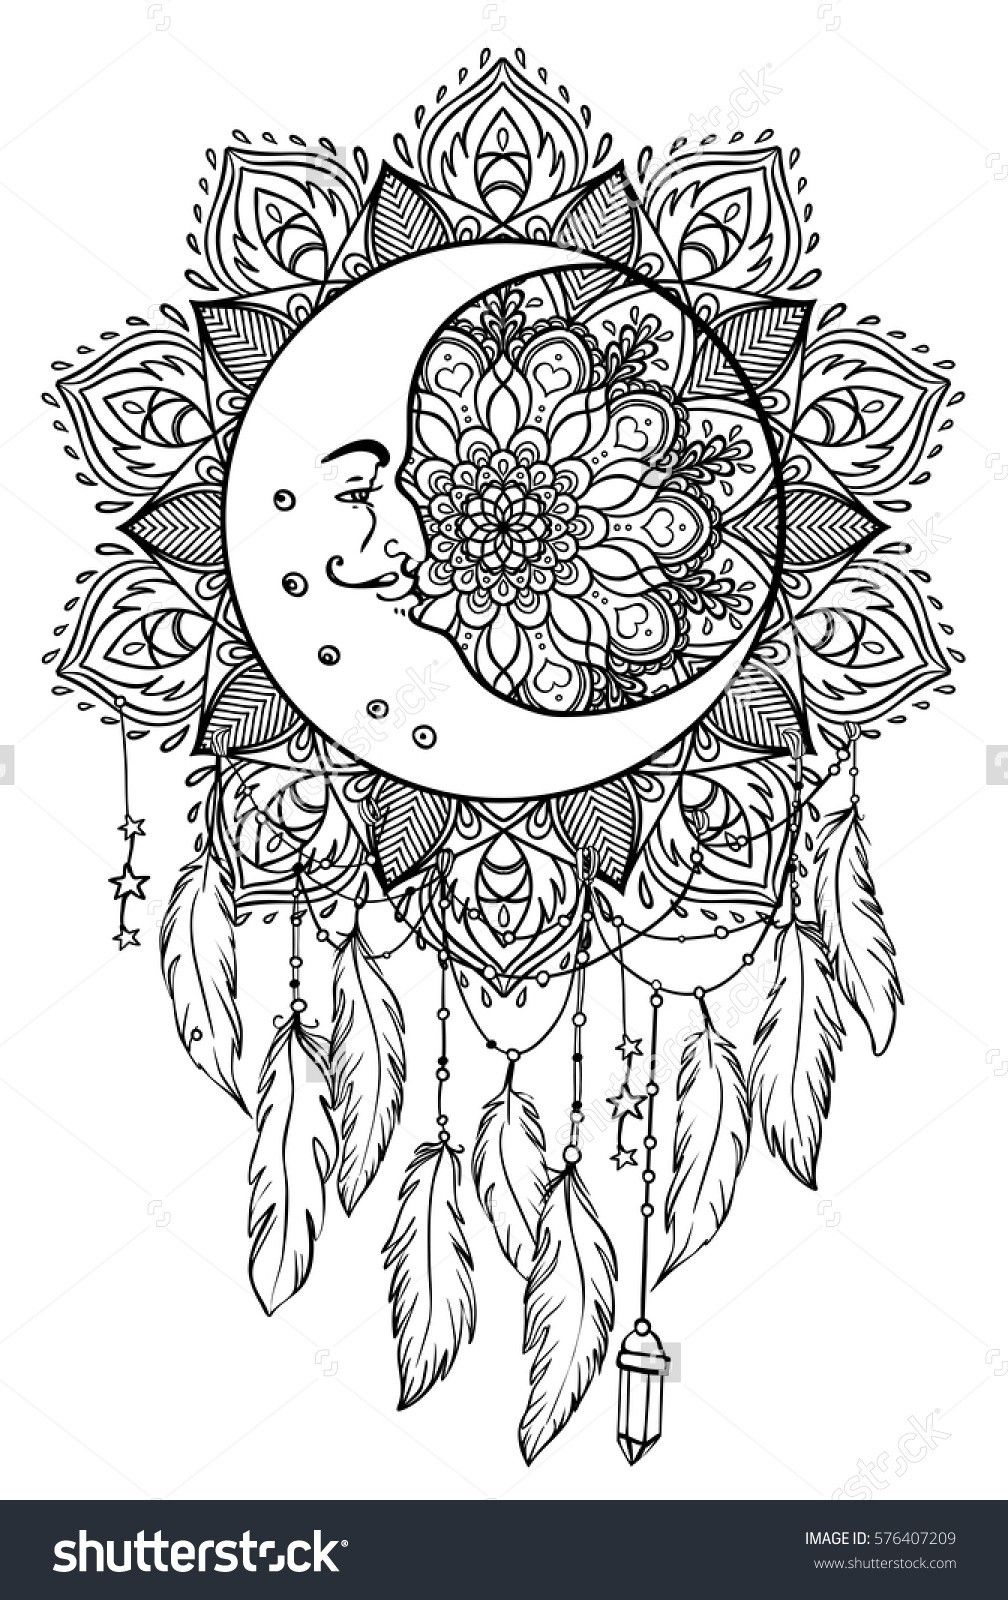 12++ Bohemian dream catcher coloring pages for adults ideas in 2021